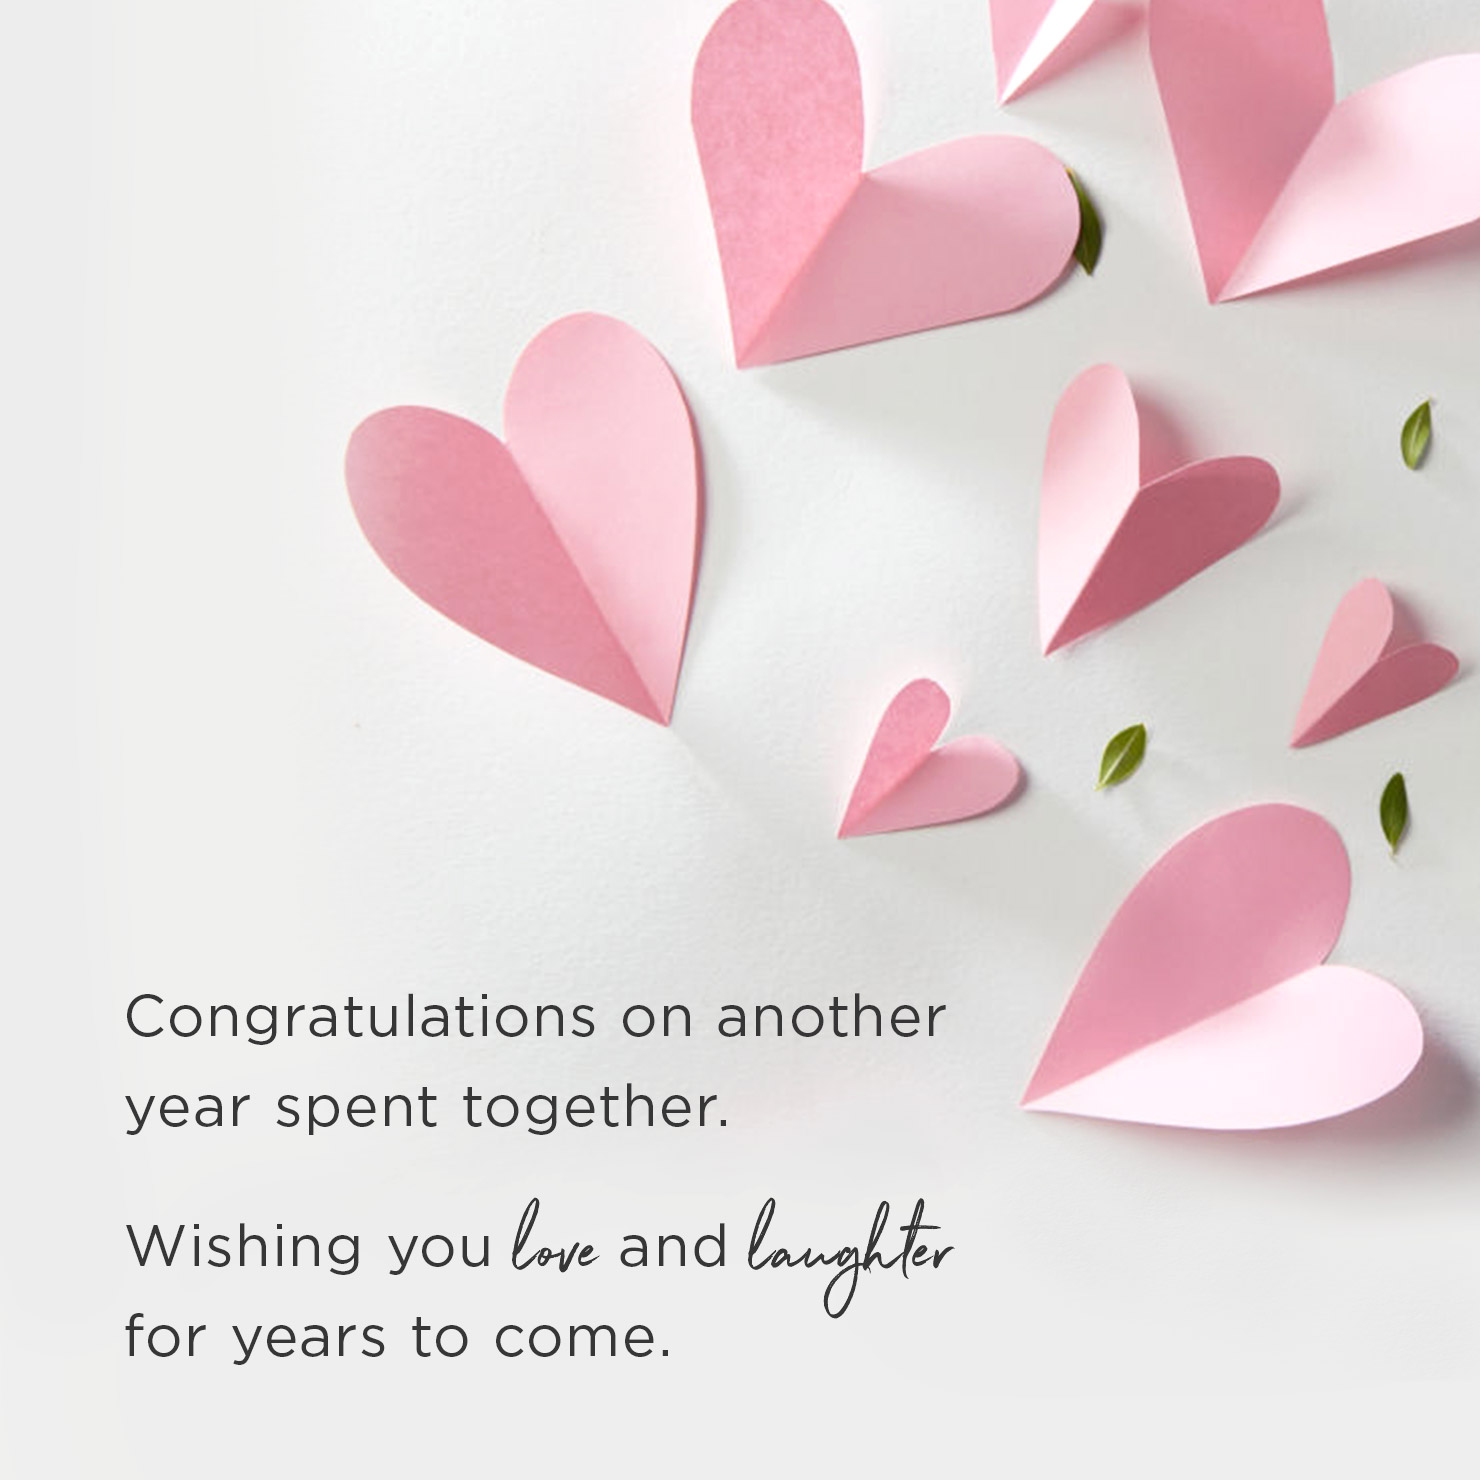 anniversary message for a couple